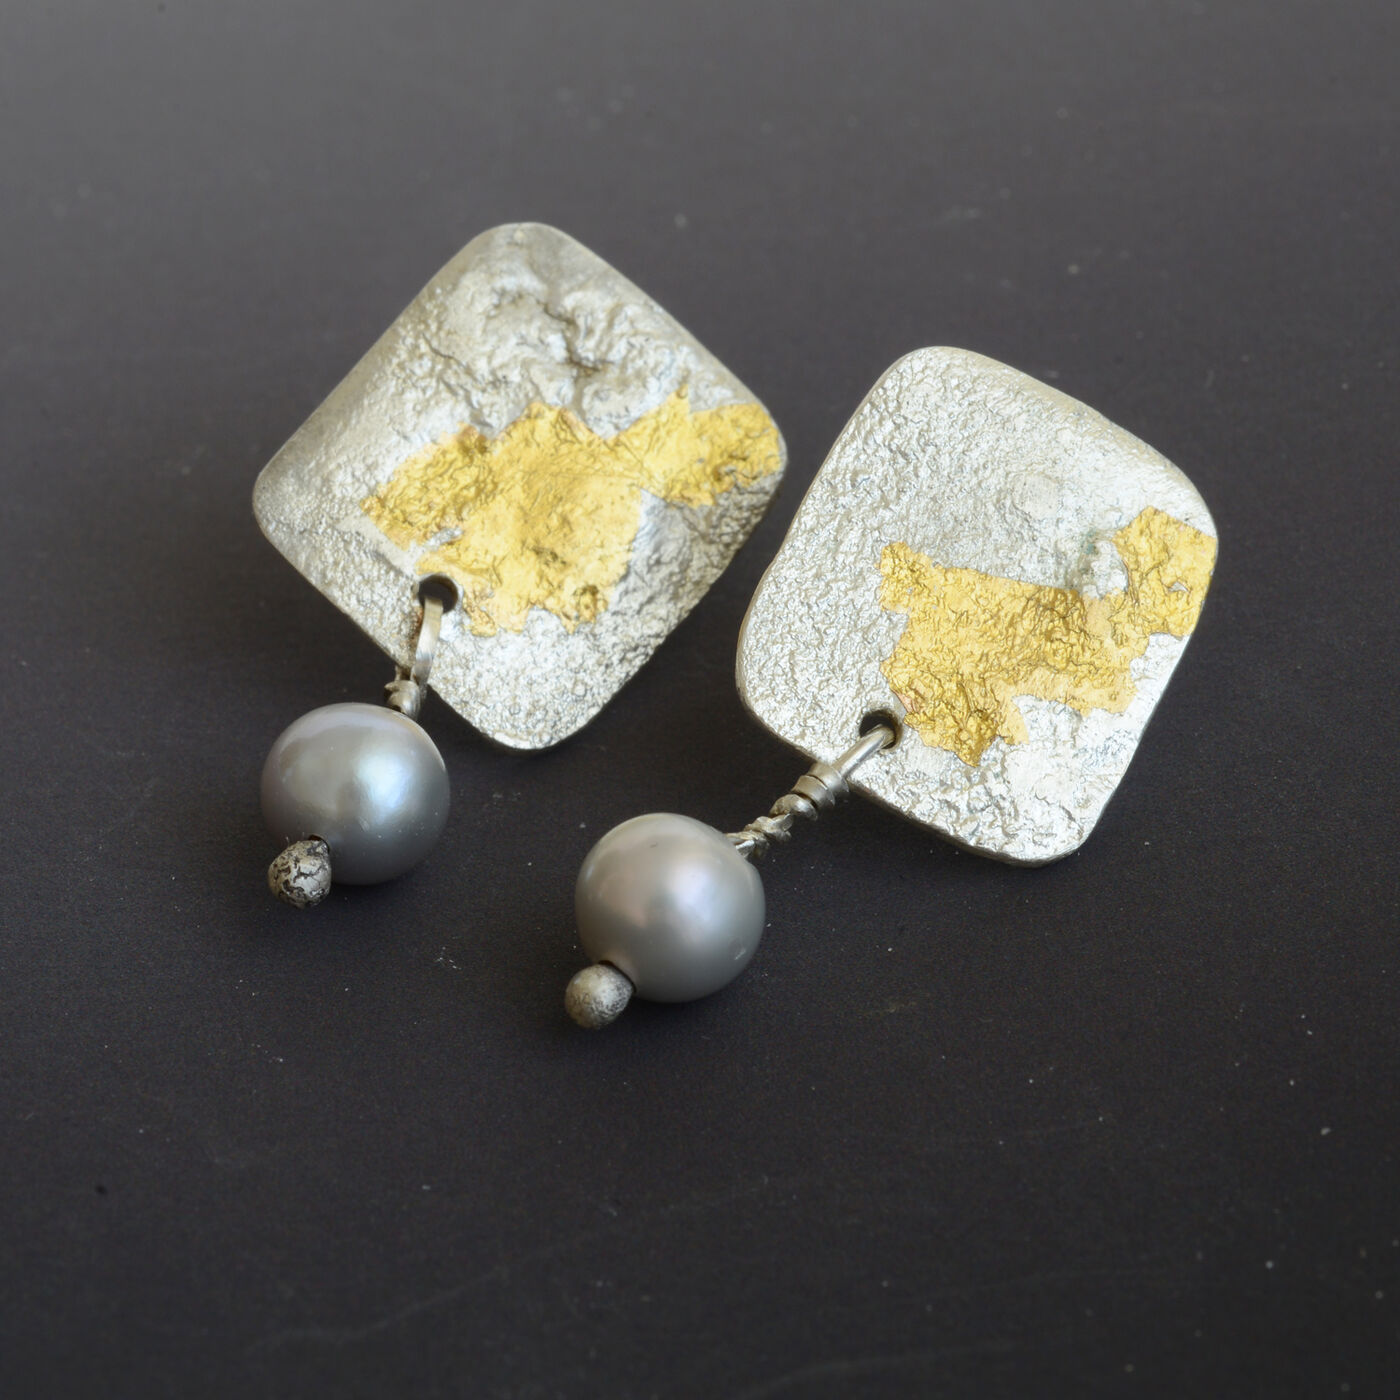 E18034 - Square silver studs with 24kt gold & grey pearls.